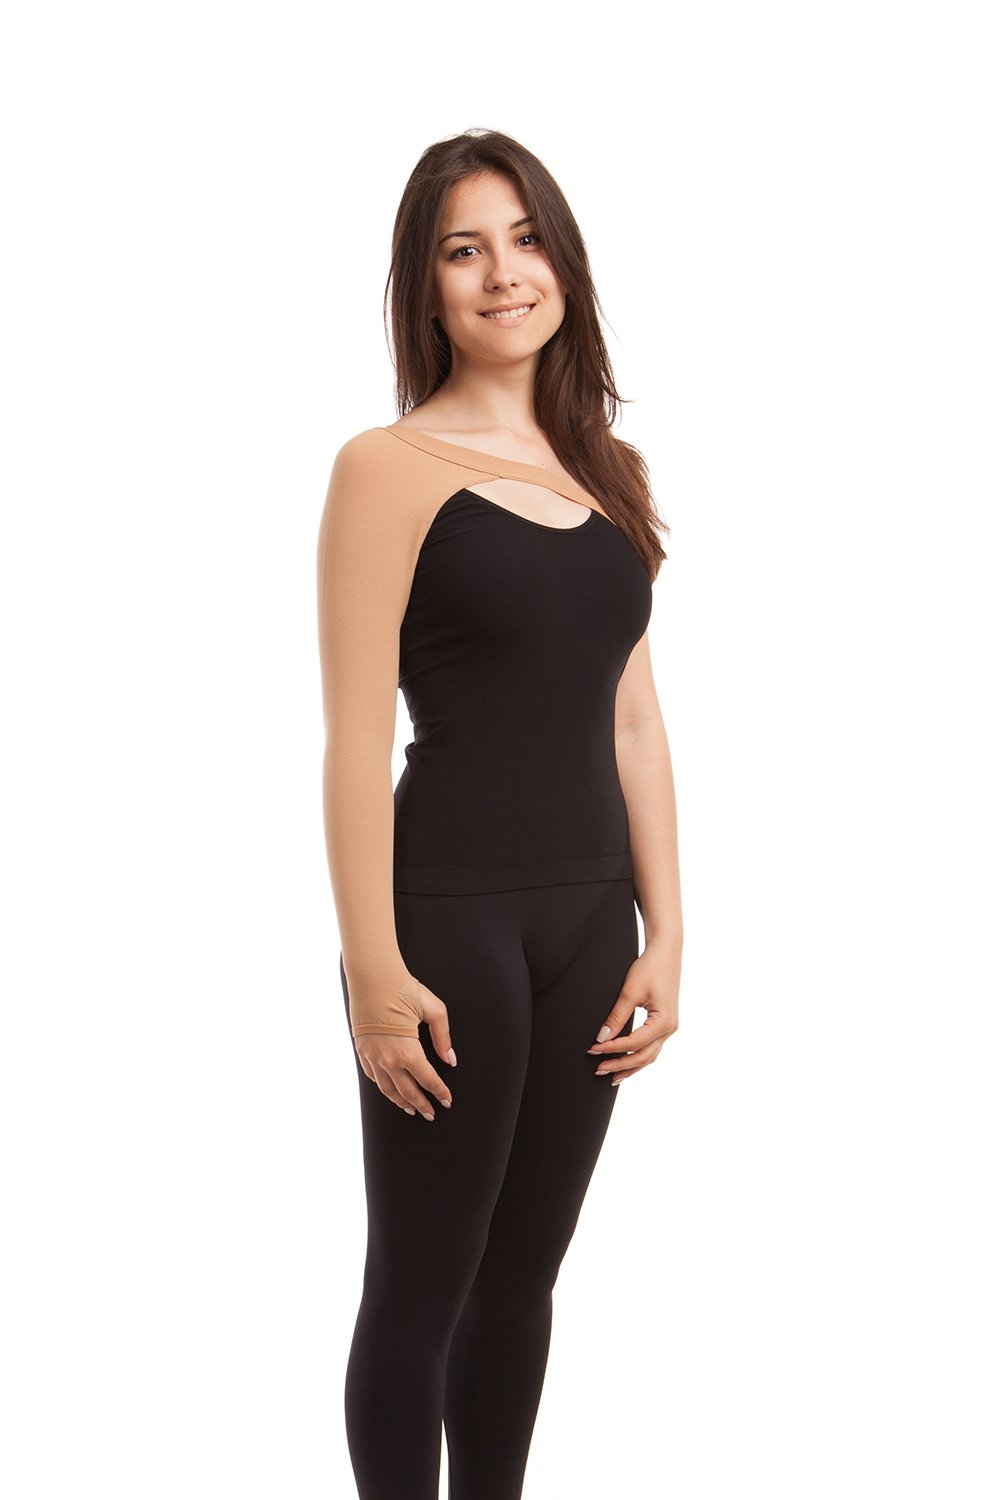 Post-Mastectomy Compression Arm Sleeve (PMS-805) - Gabrialla